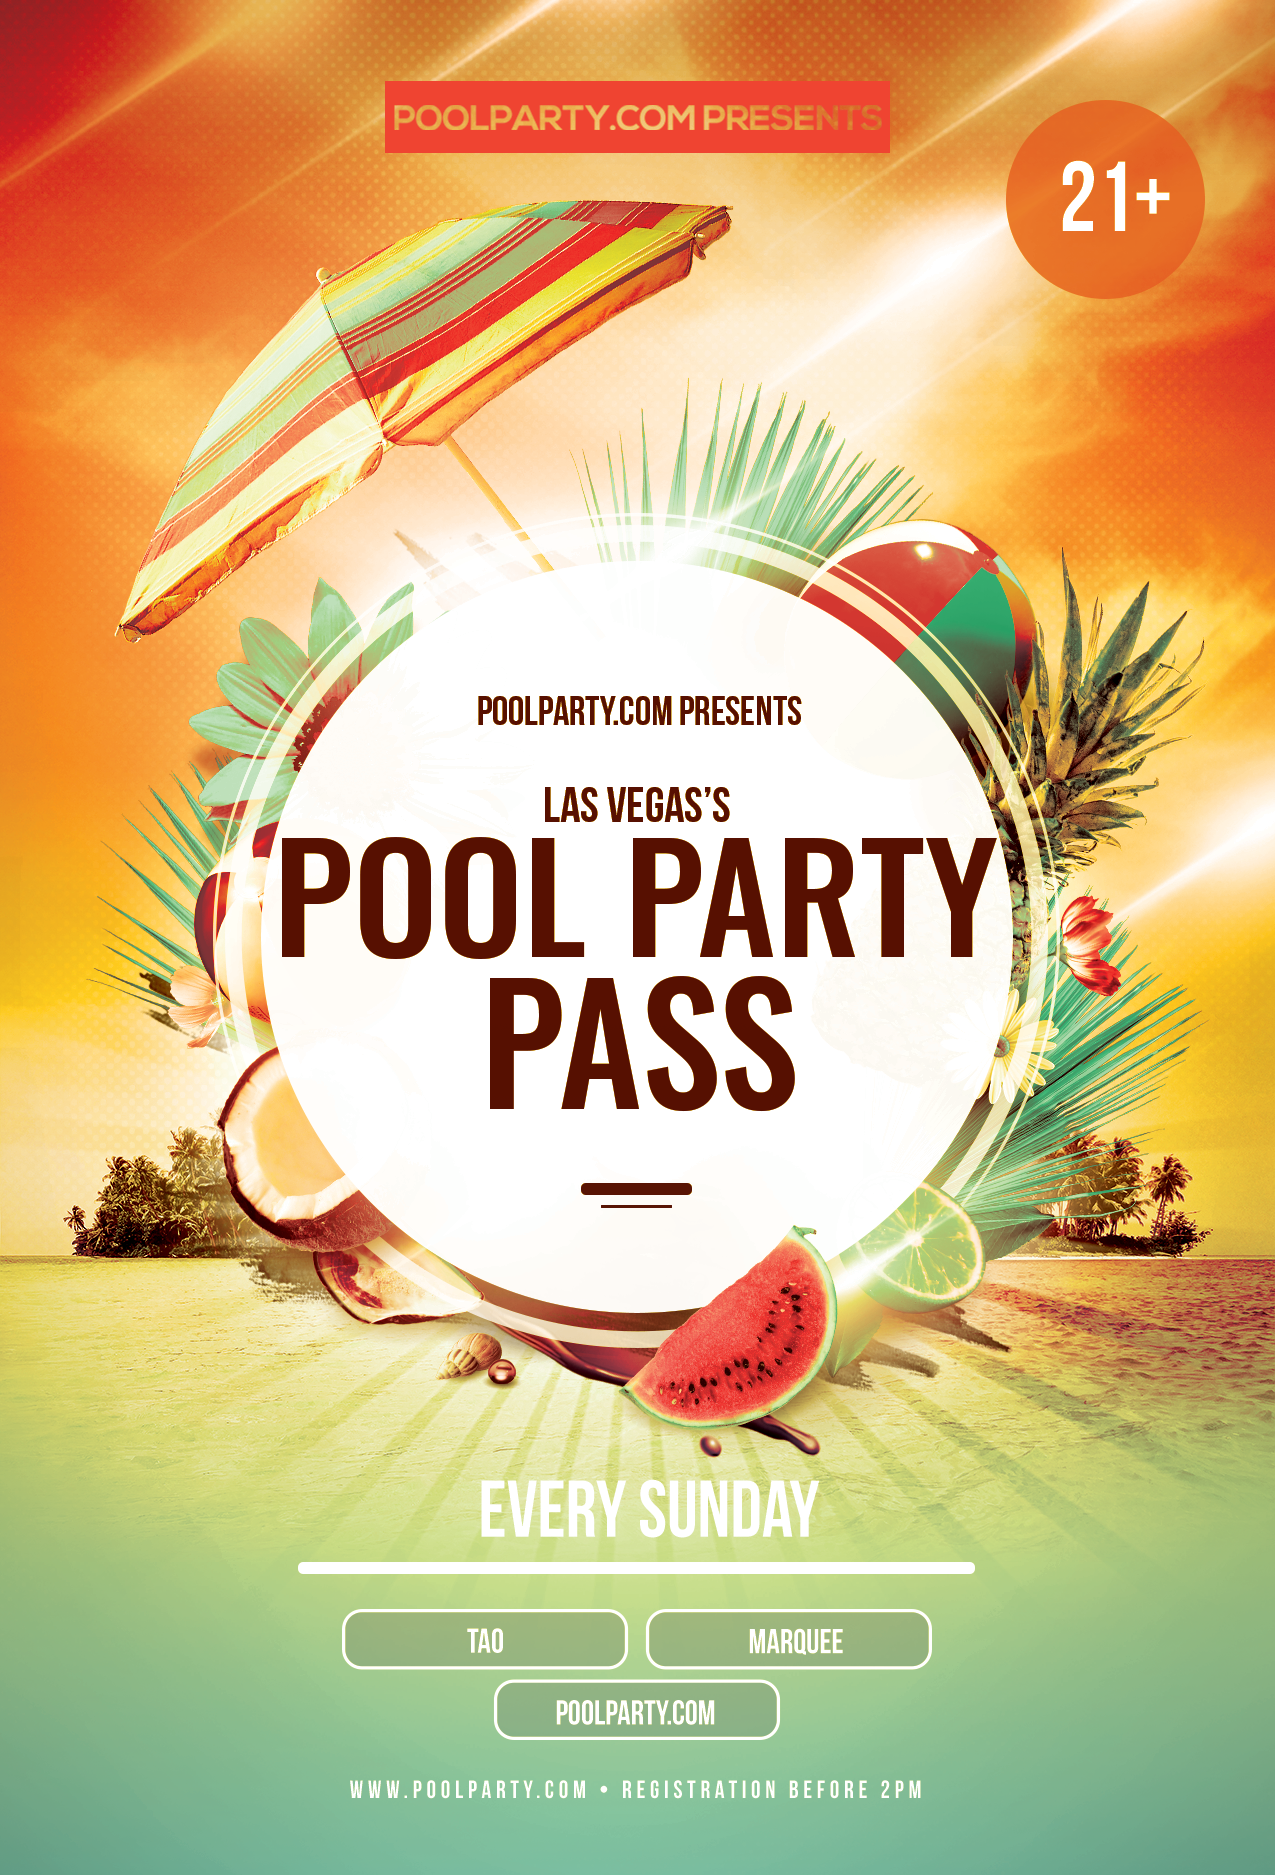 Sunday's Pool Party Pass (September 29th)*NOW INCLUDING FREE ADMISSION TO TAO NIGHTCLUB*